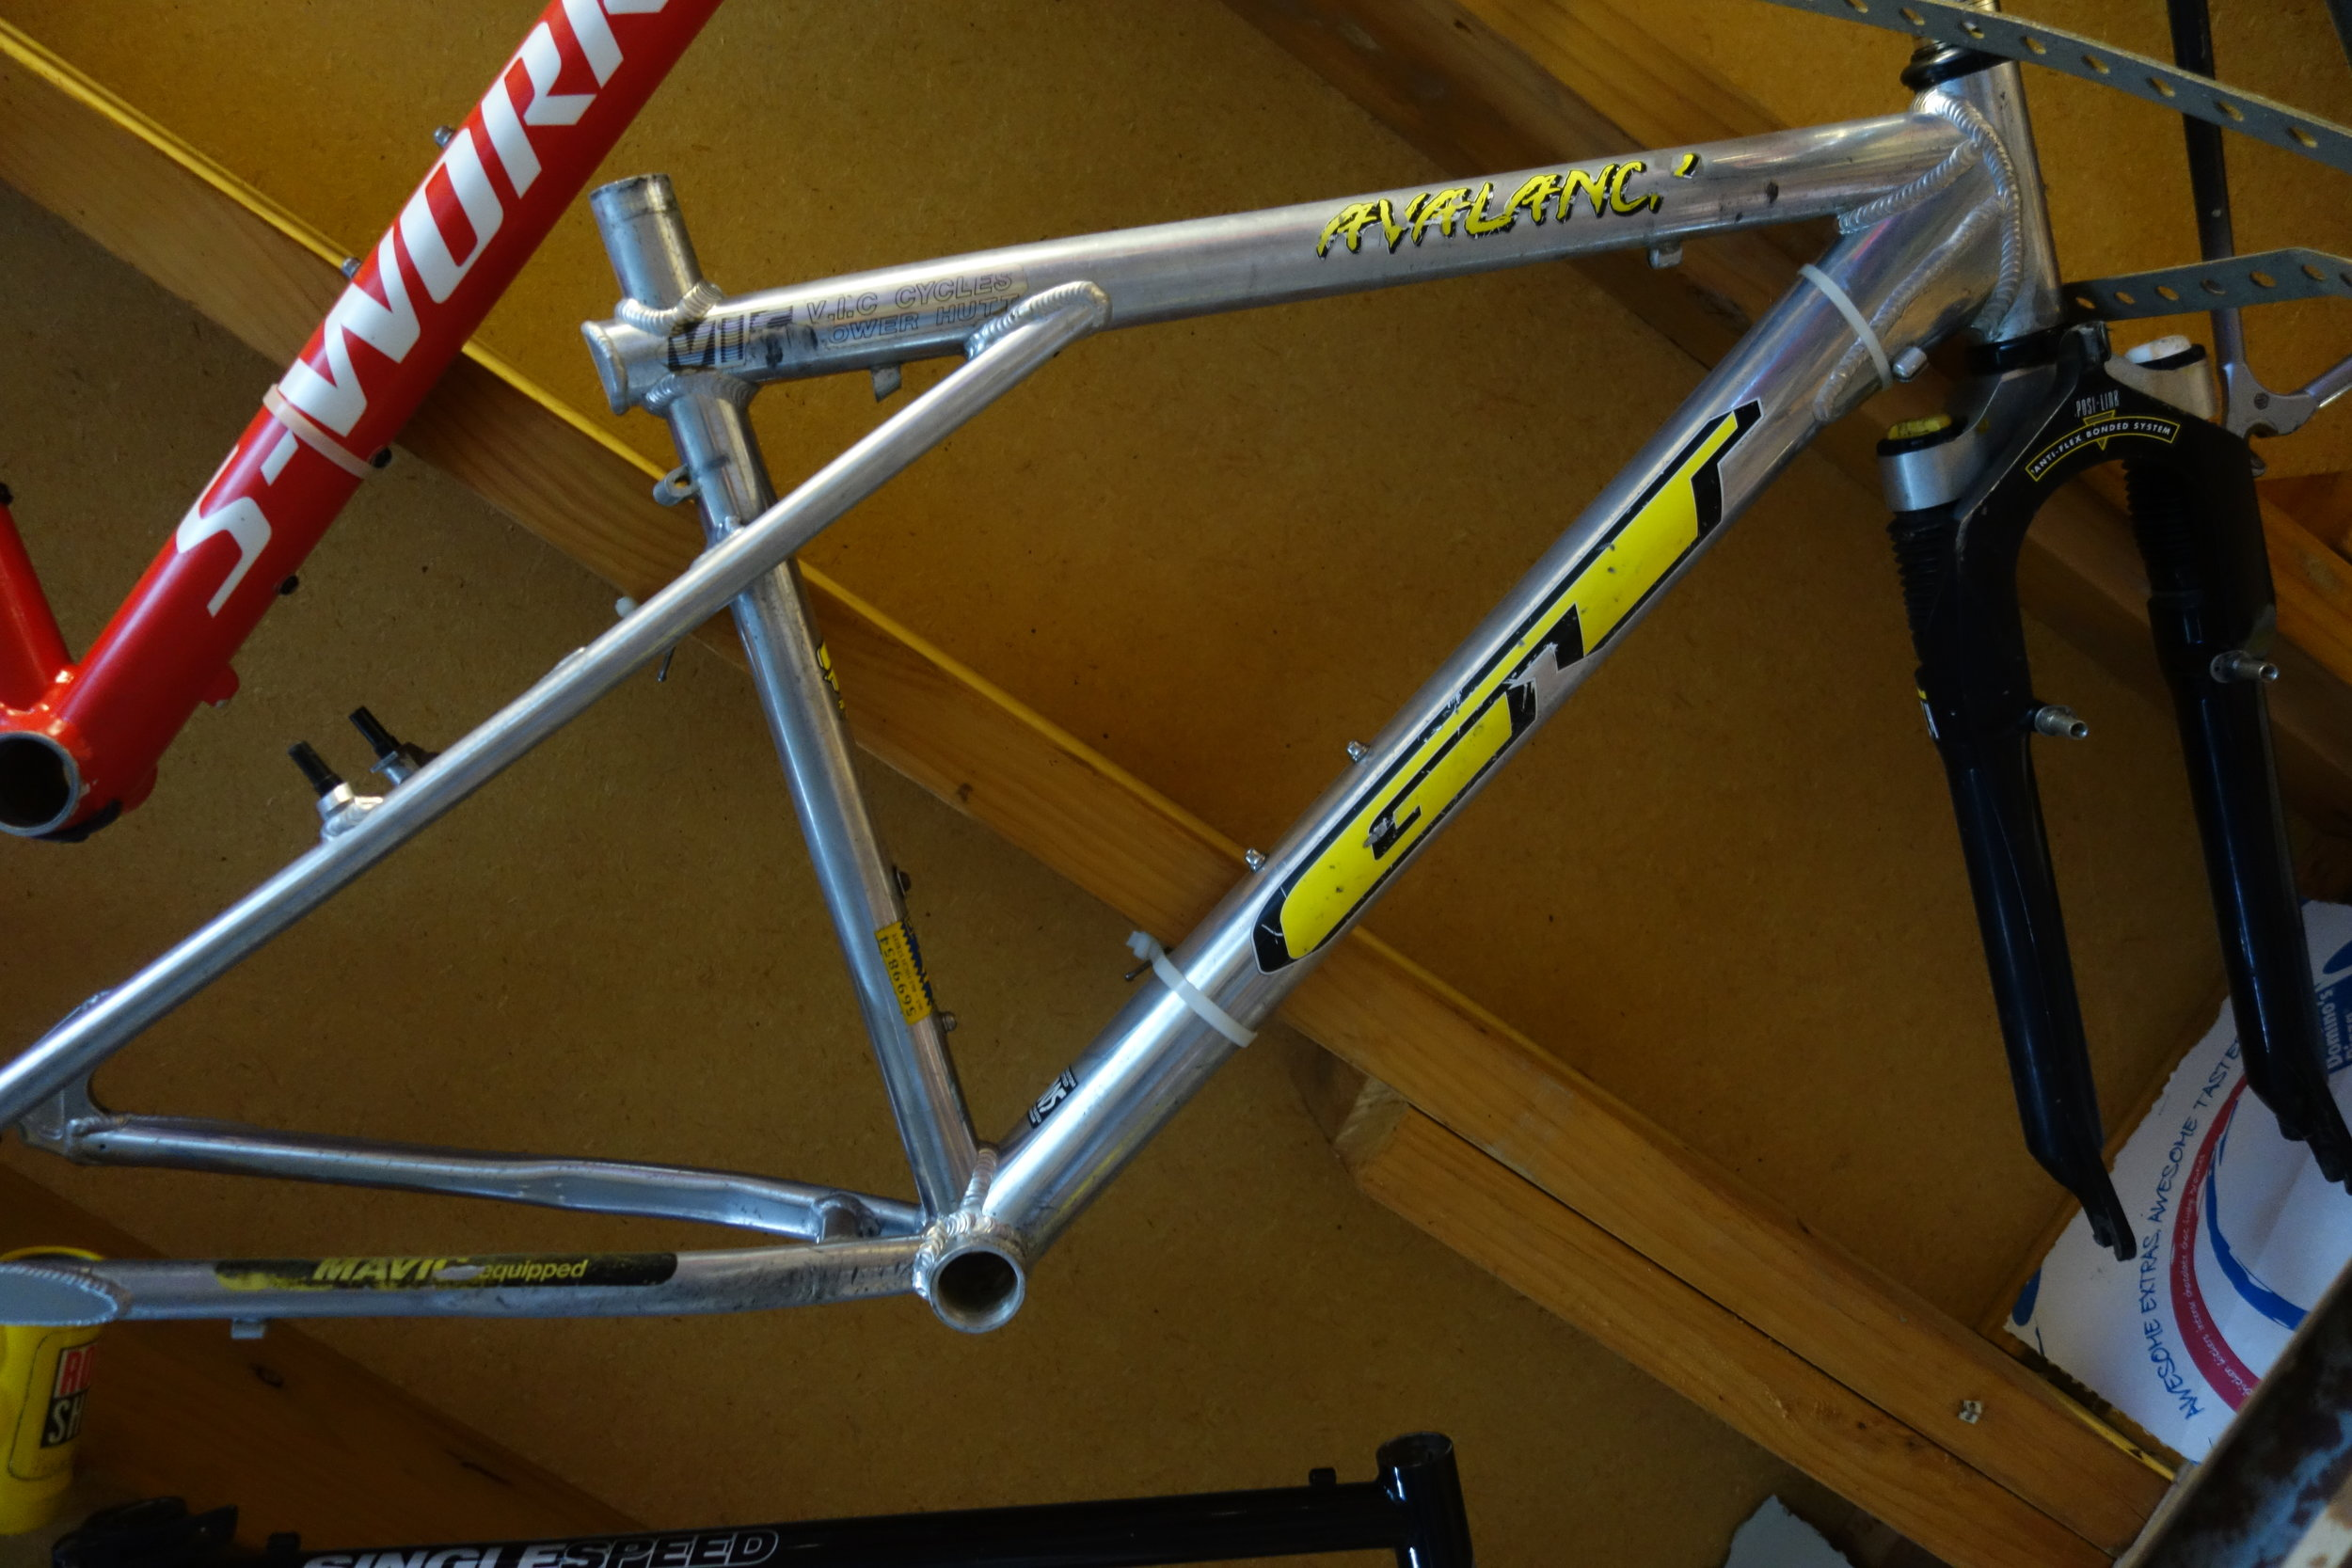 GT bikes dominated the 90's. We all lusted after them.